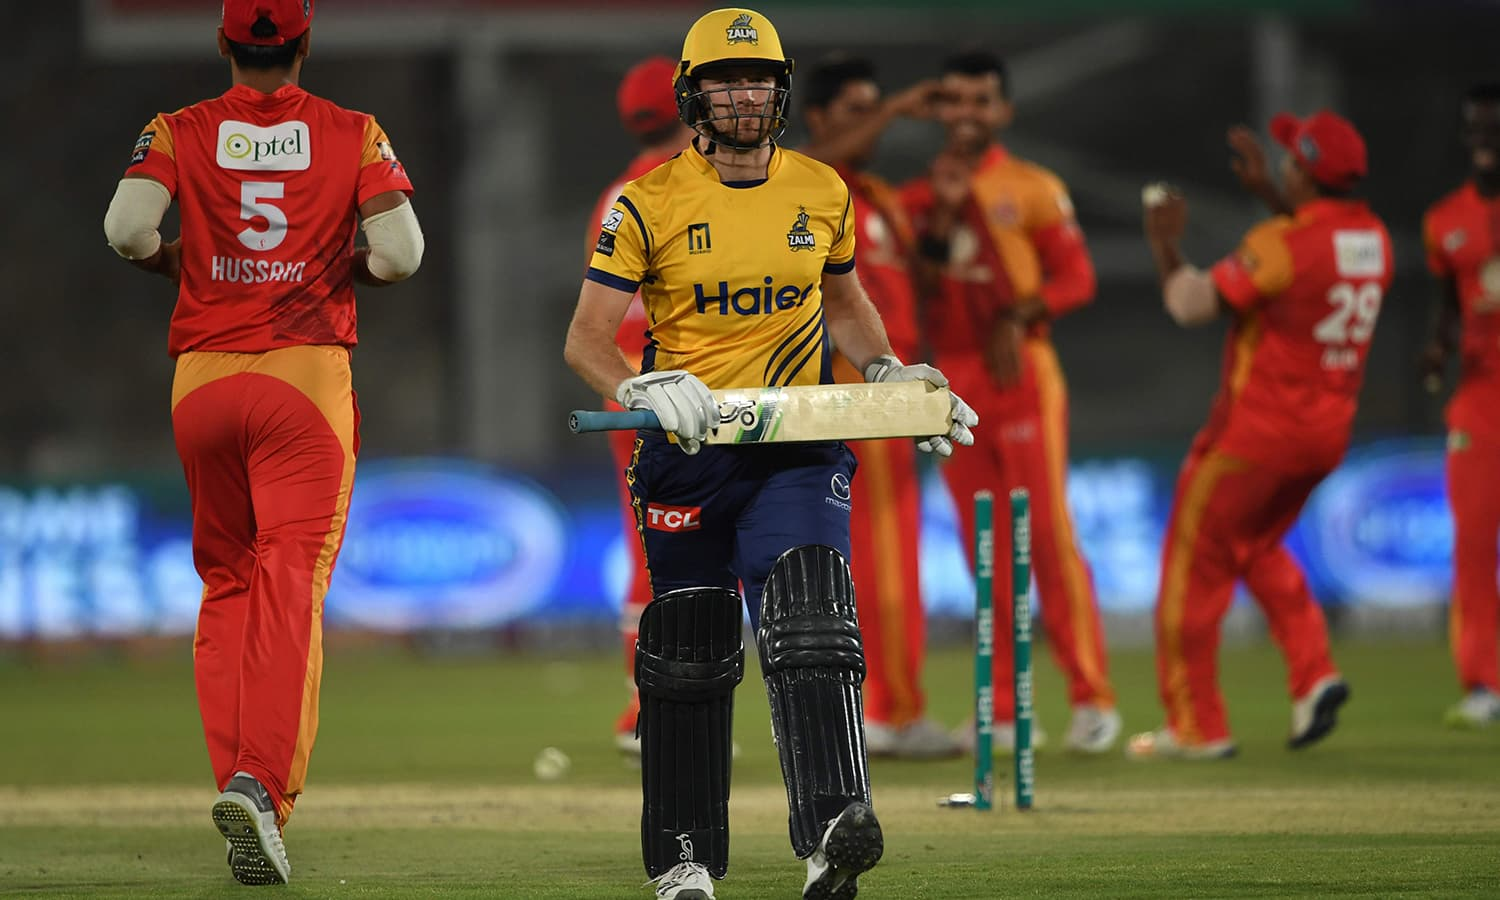 Liam Dawson of Zalmi walks back after clean bowled by Mohammad Sami of United. —AFP